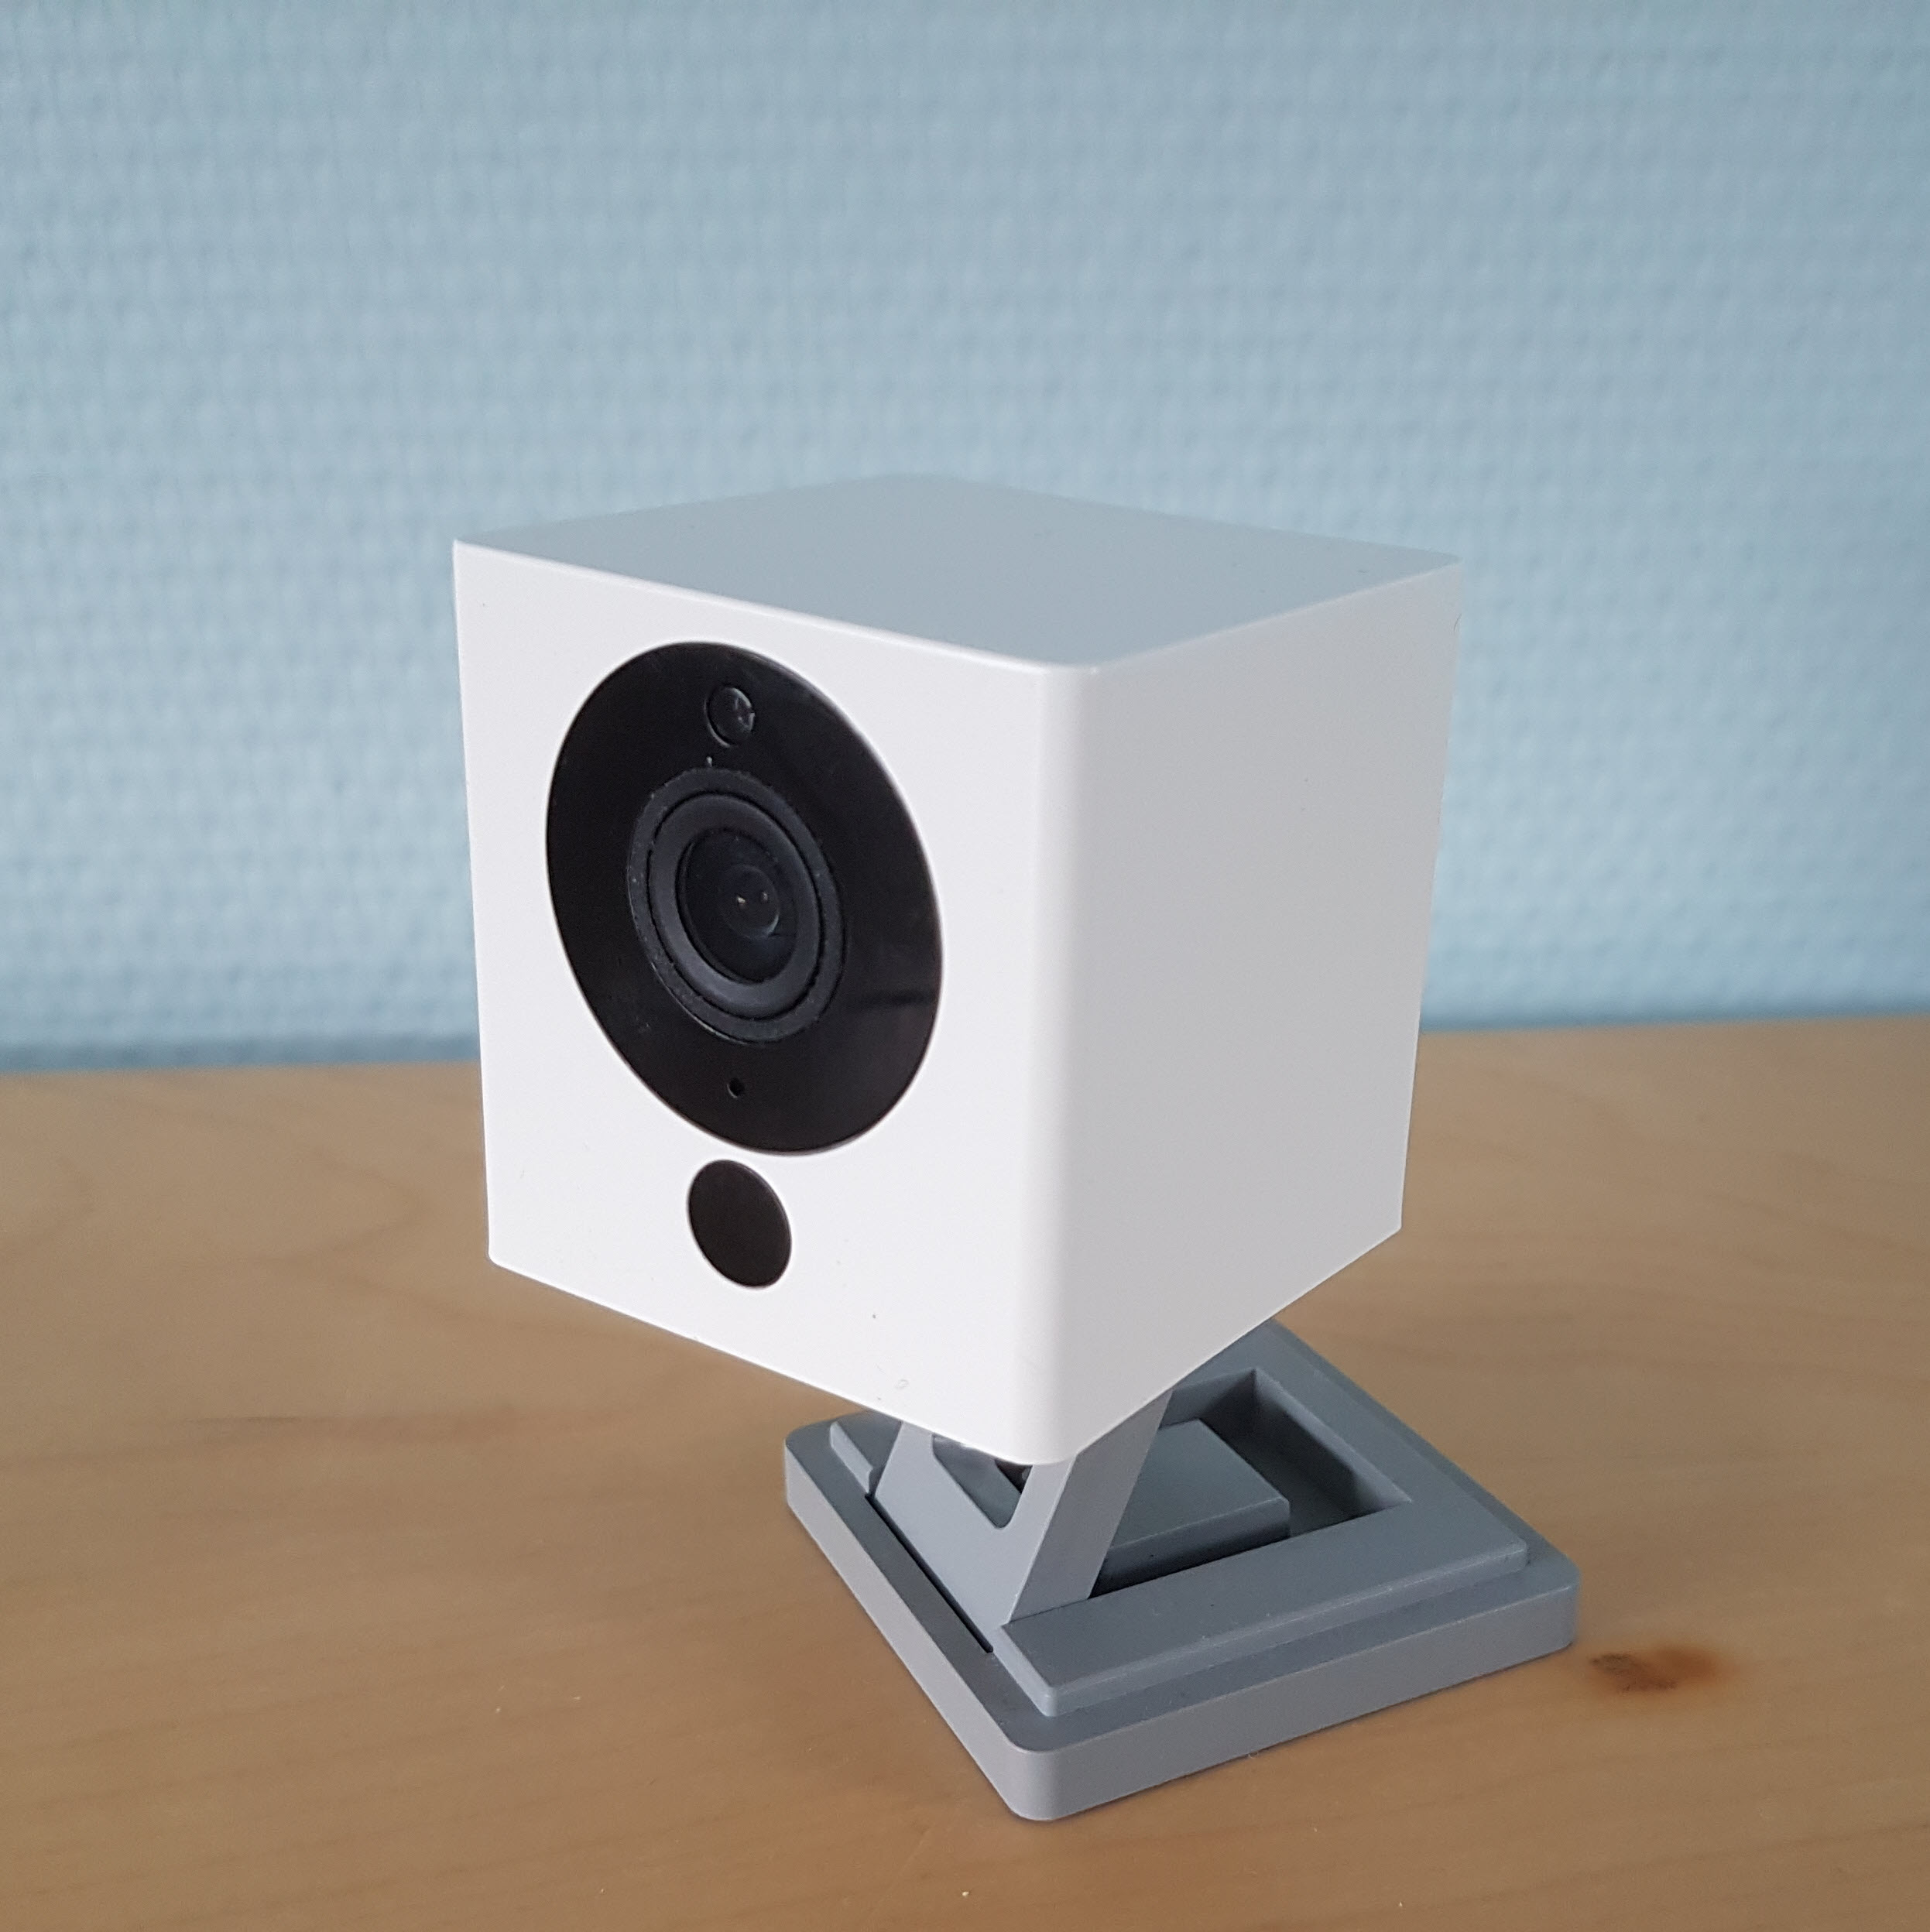 How to connect to serial port of Xiaomi Xiaofang IP Camera